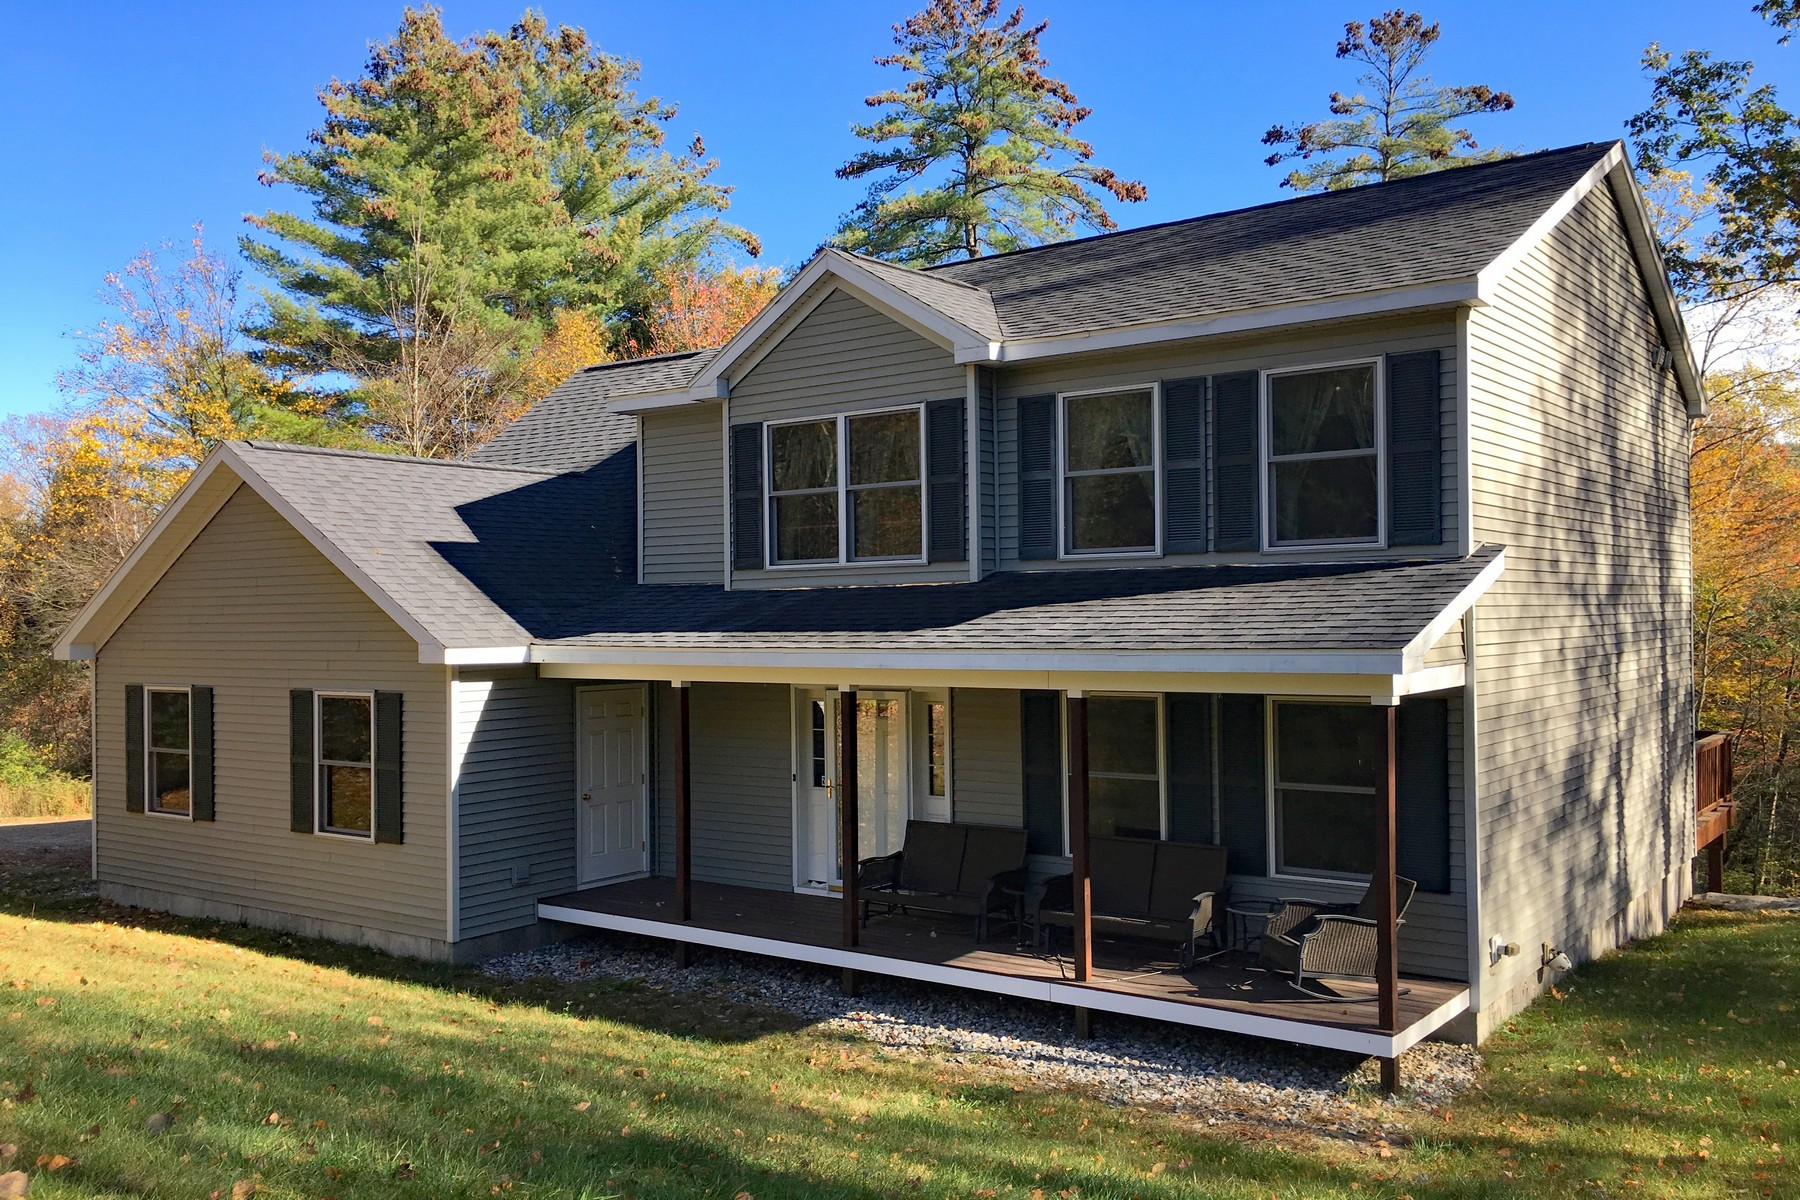 Single Family Home for Sale at Immaculate - Ideal Location Near Town 301 Remington Rd Chester, Vermont 05143 United States